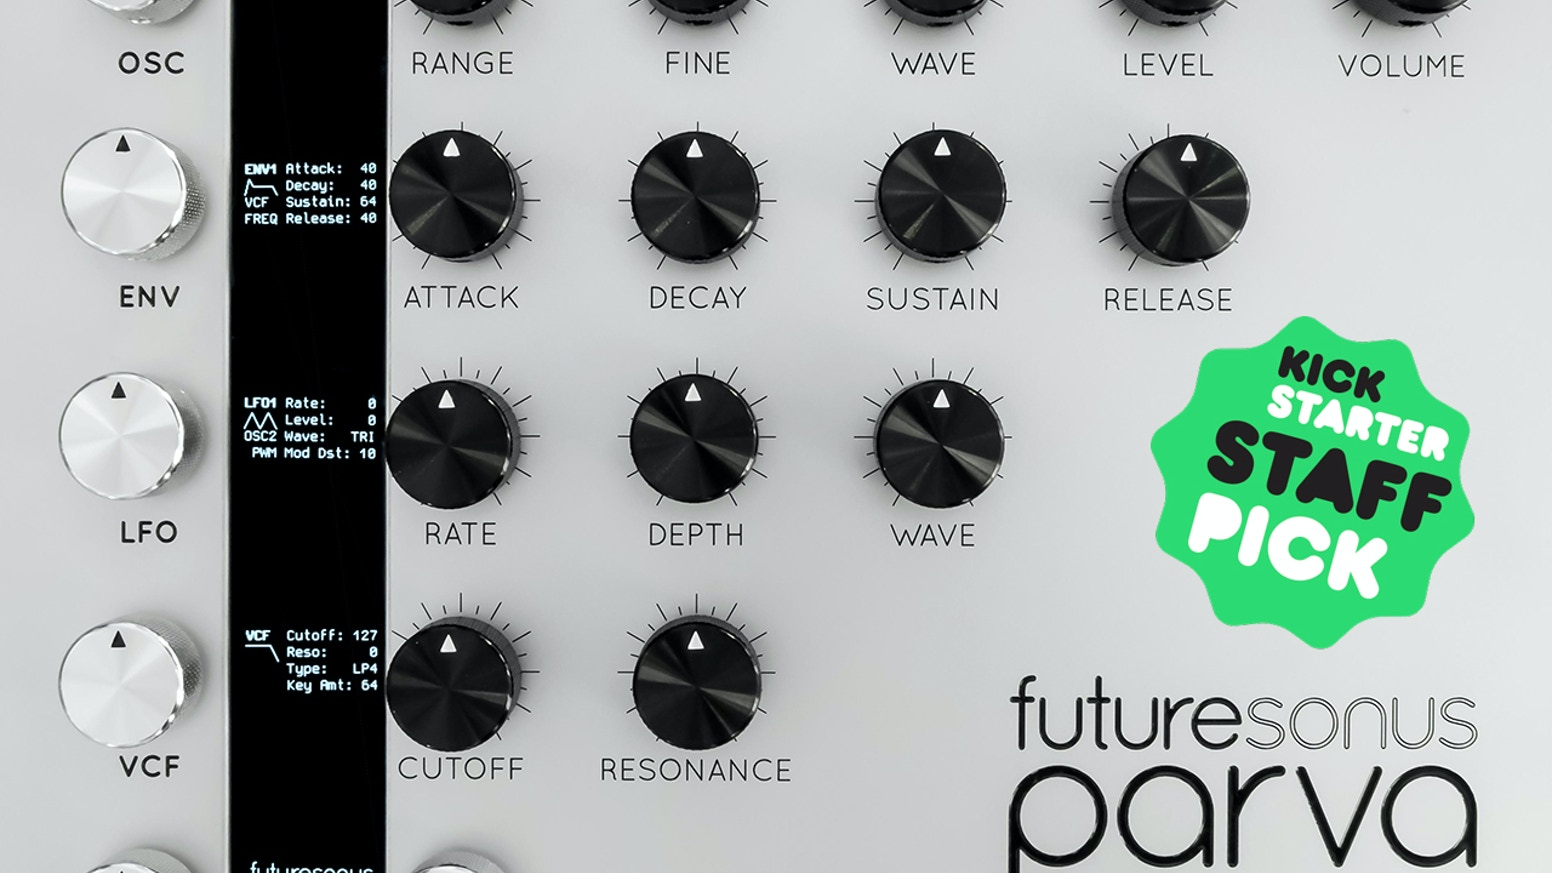 Introducing a revolutionary new synthesizer combining the classic warmth of analog synthesis with the convenience of digital control.